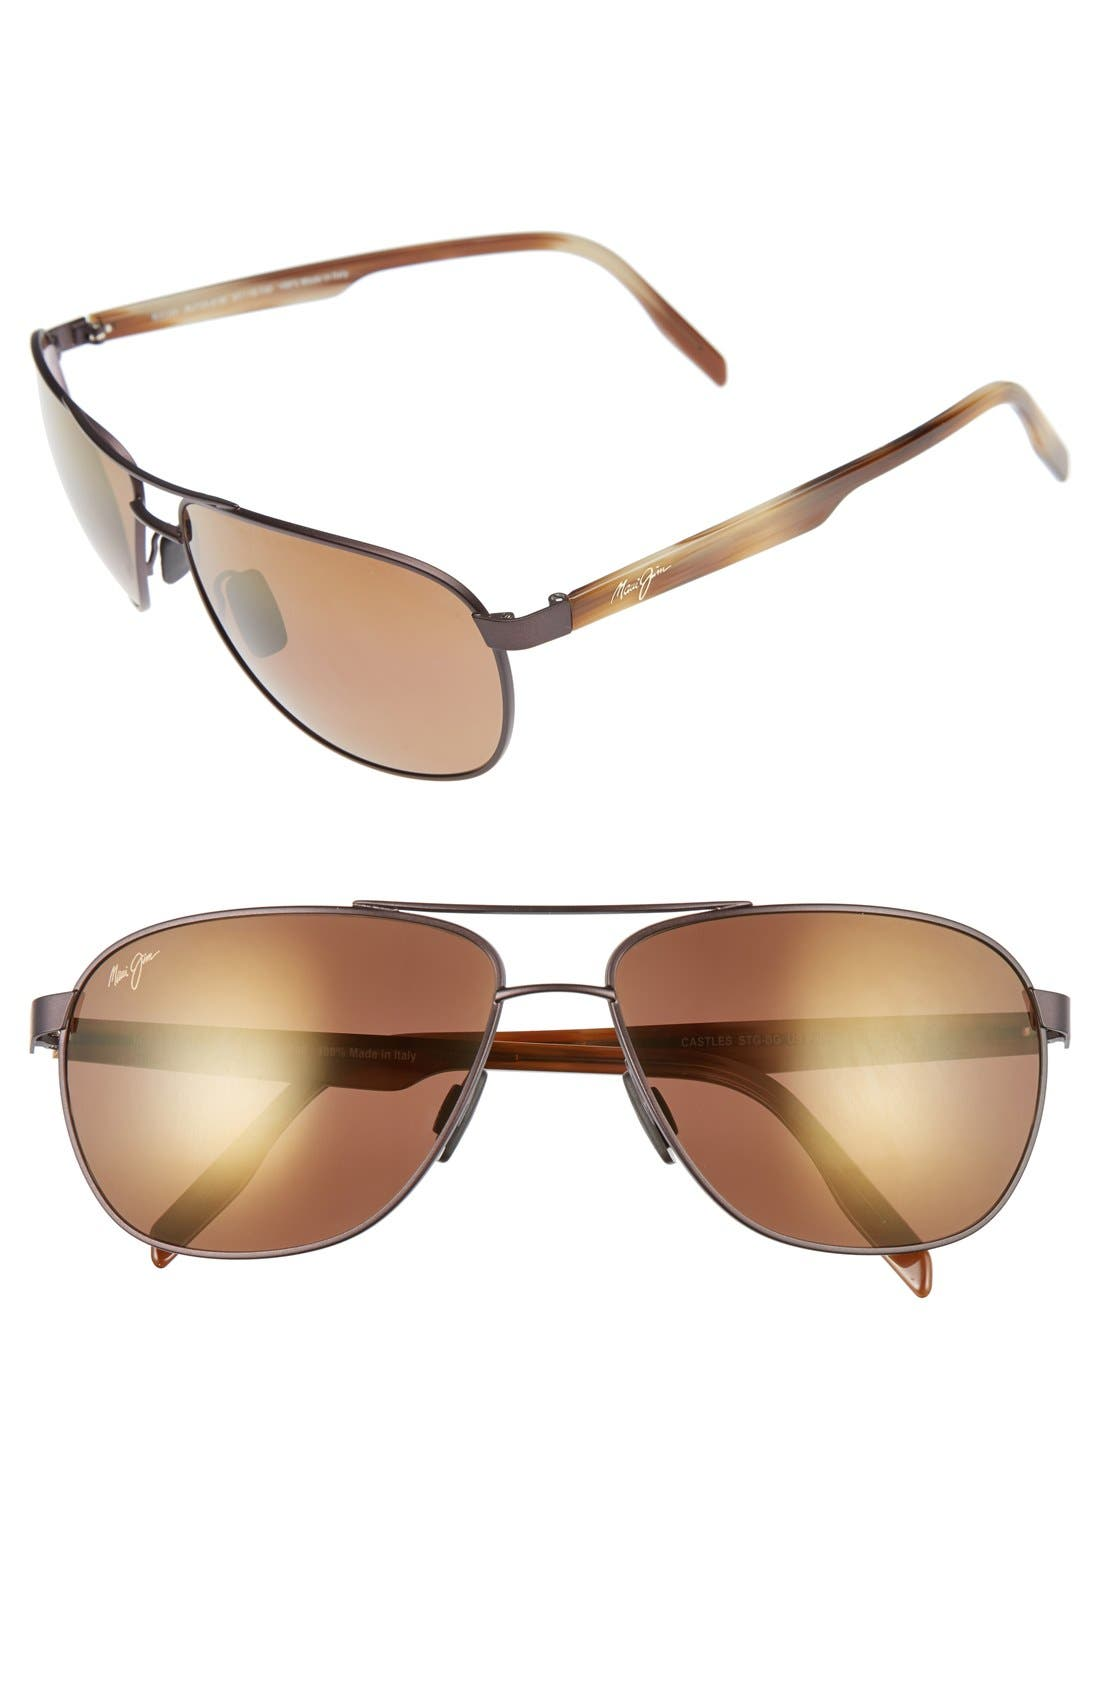 MAUI JIM Castles - PolarizedPlus<sup>®</sup>2 61mm Aviator Sunglasses